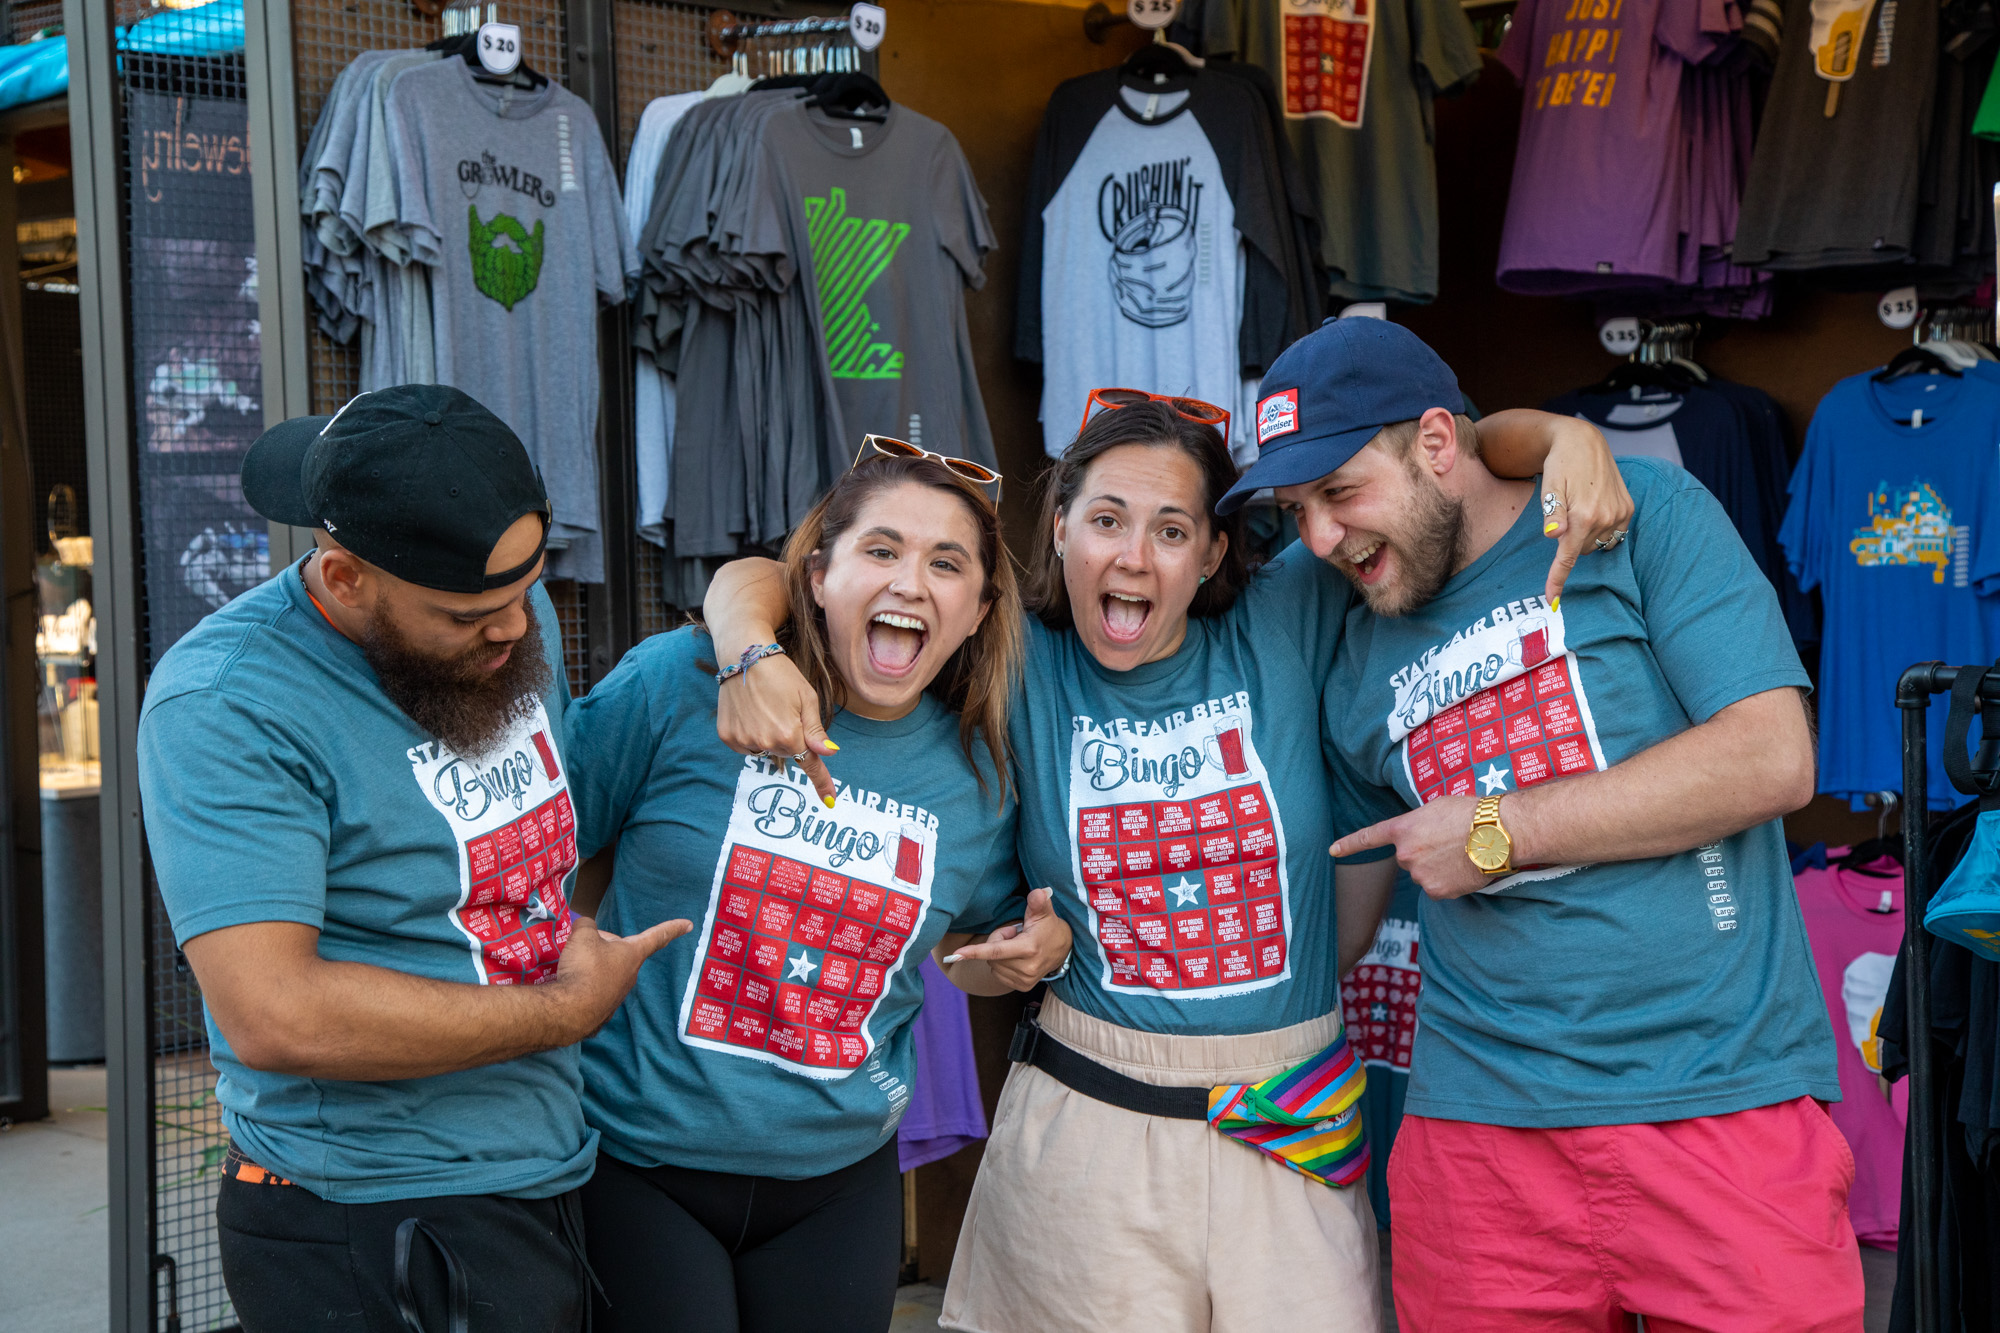 Beer Dabbler's Beer Bingo Shirts are on sale at the Beer Dabbler Store booth in the West End Market • Photo by Jordan Wipf